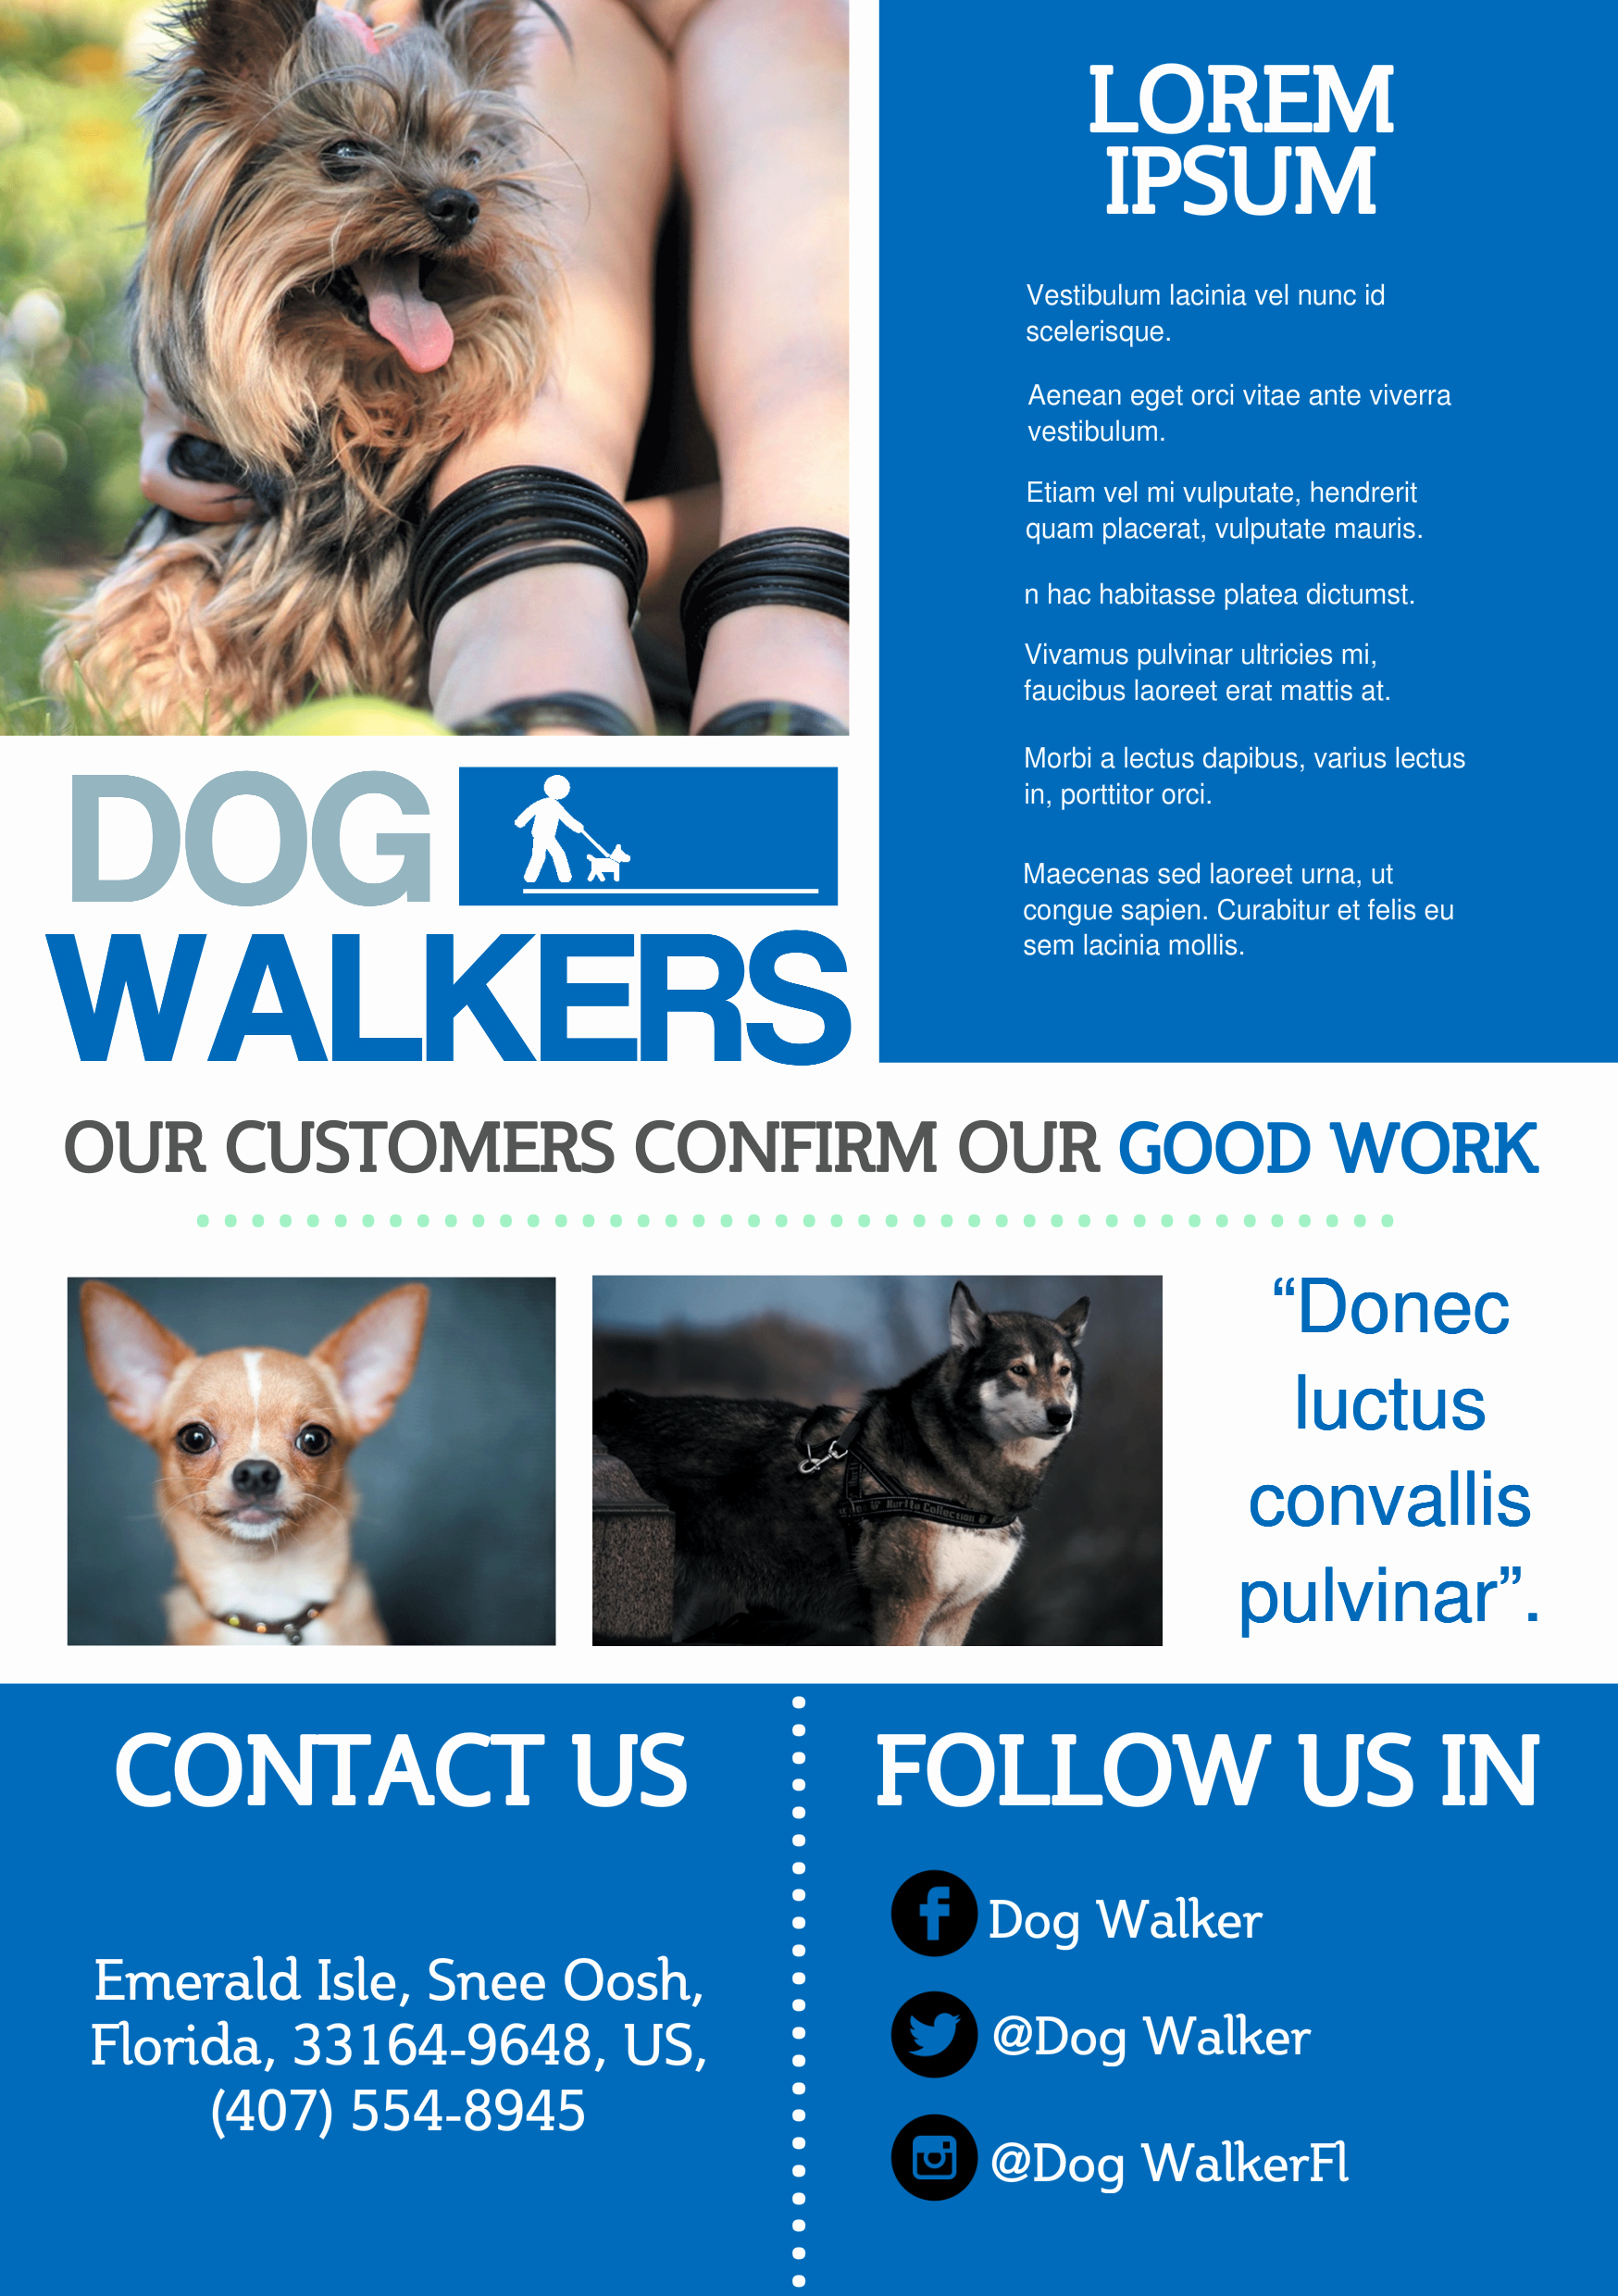 Dog Walking Flyer Template Best Of Dog Walker A5 Promotional Flyer